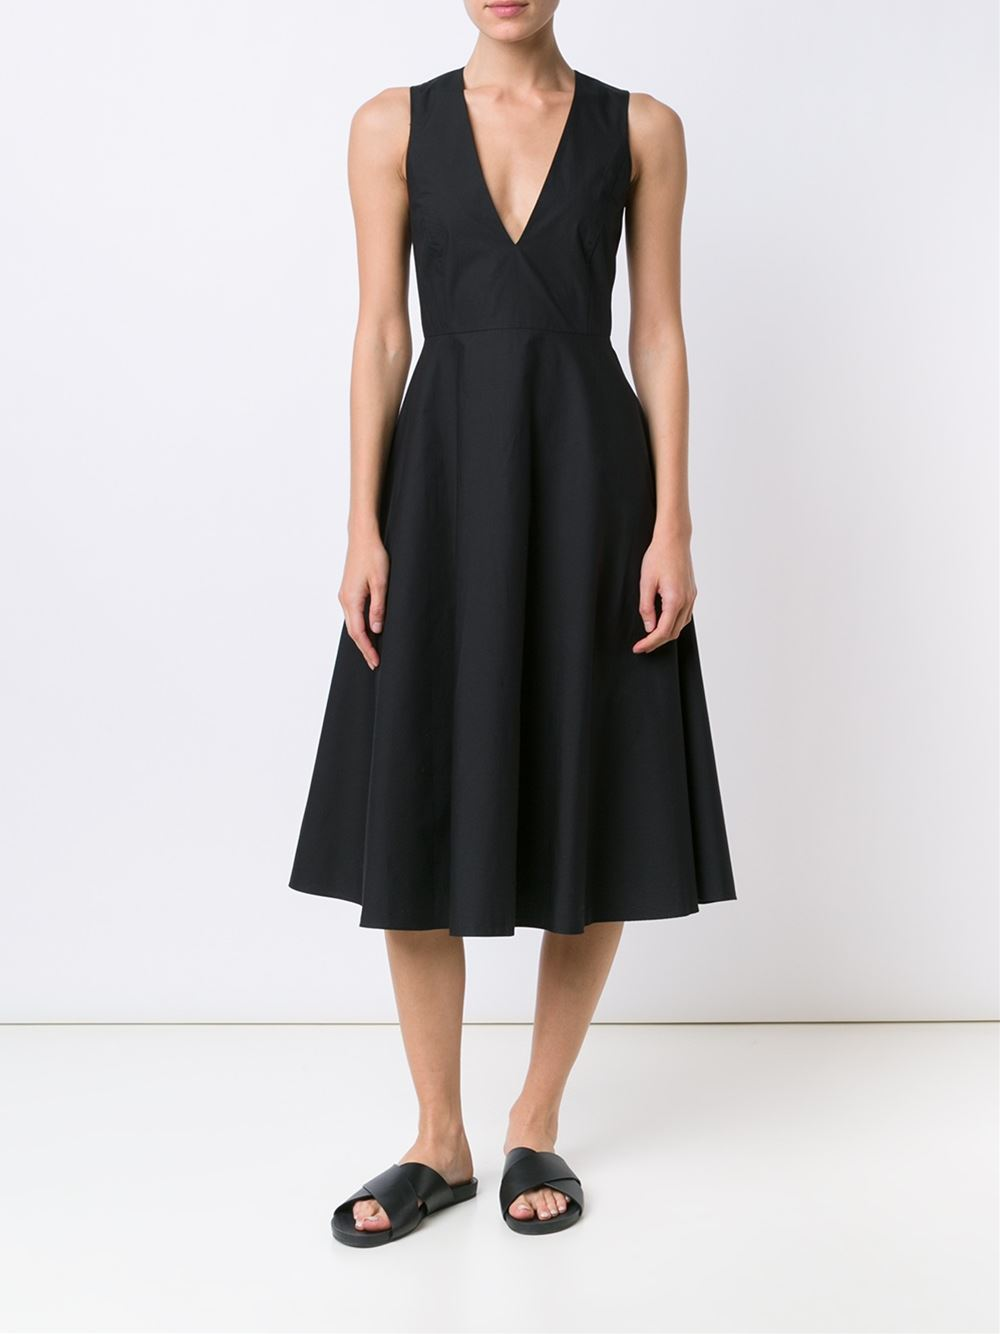 Organic by John Patrick cotton dress